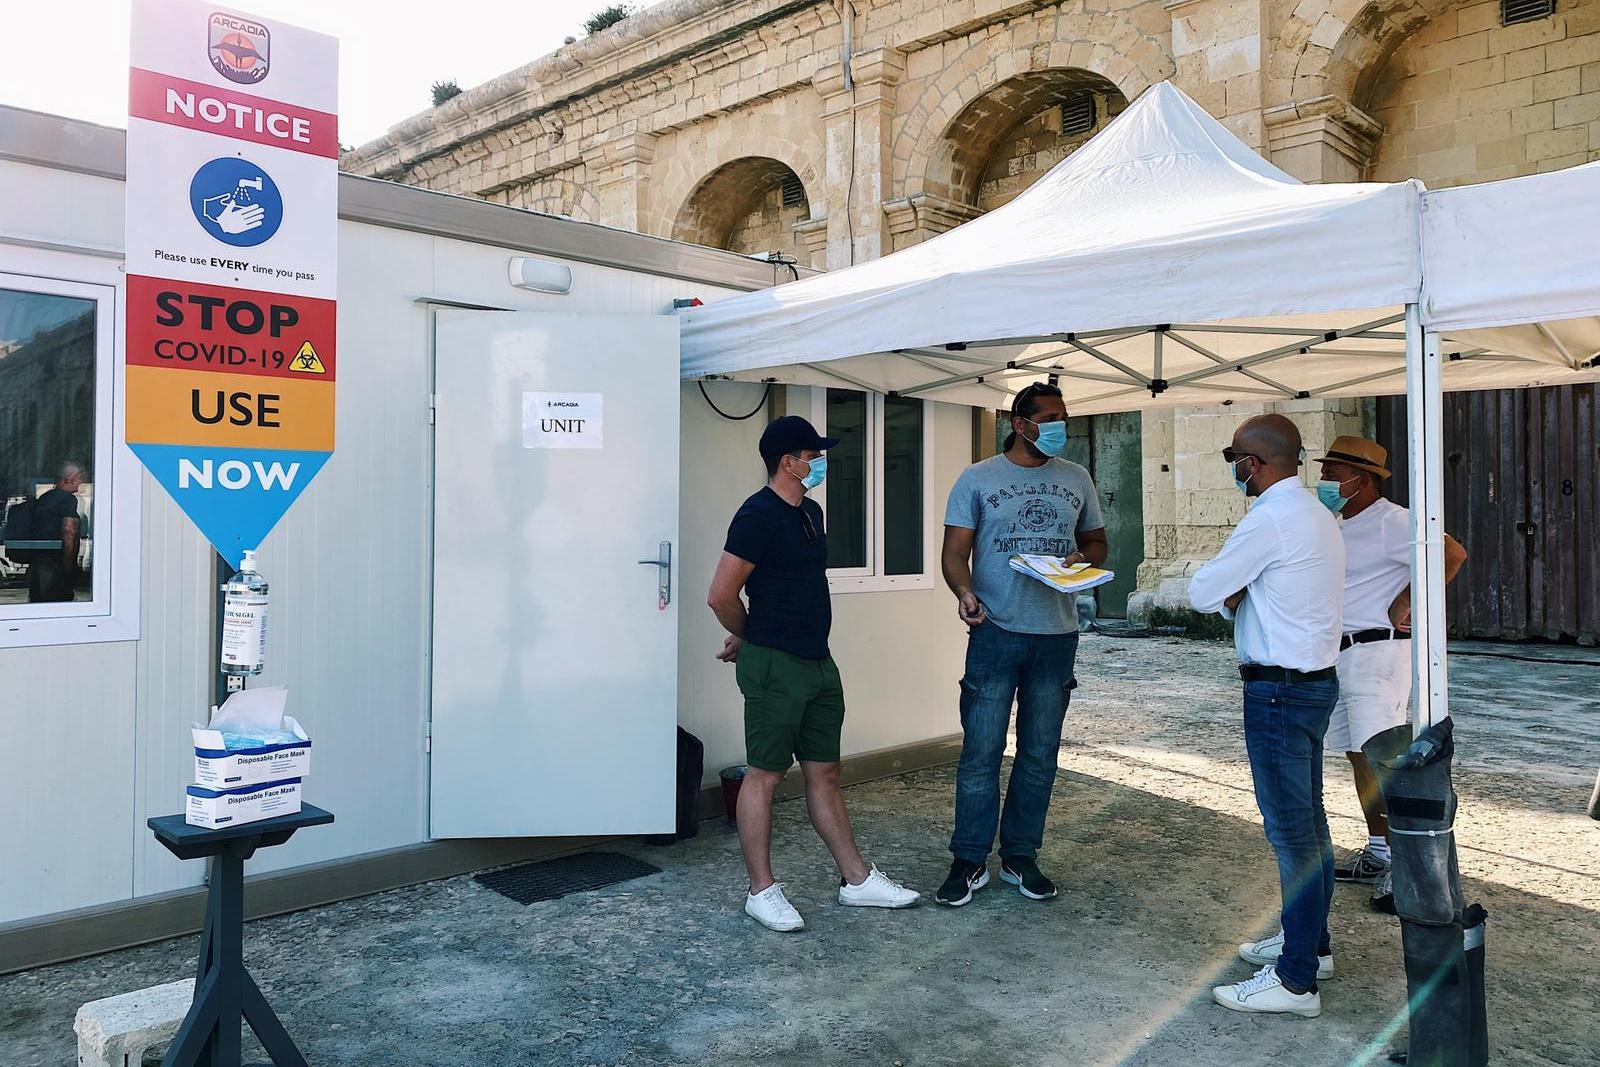 The Film Commission visit a testing site on set in Malta.